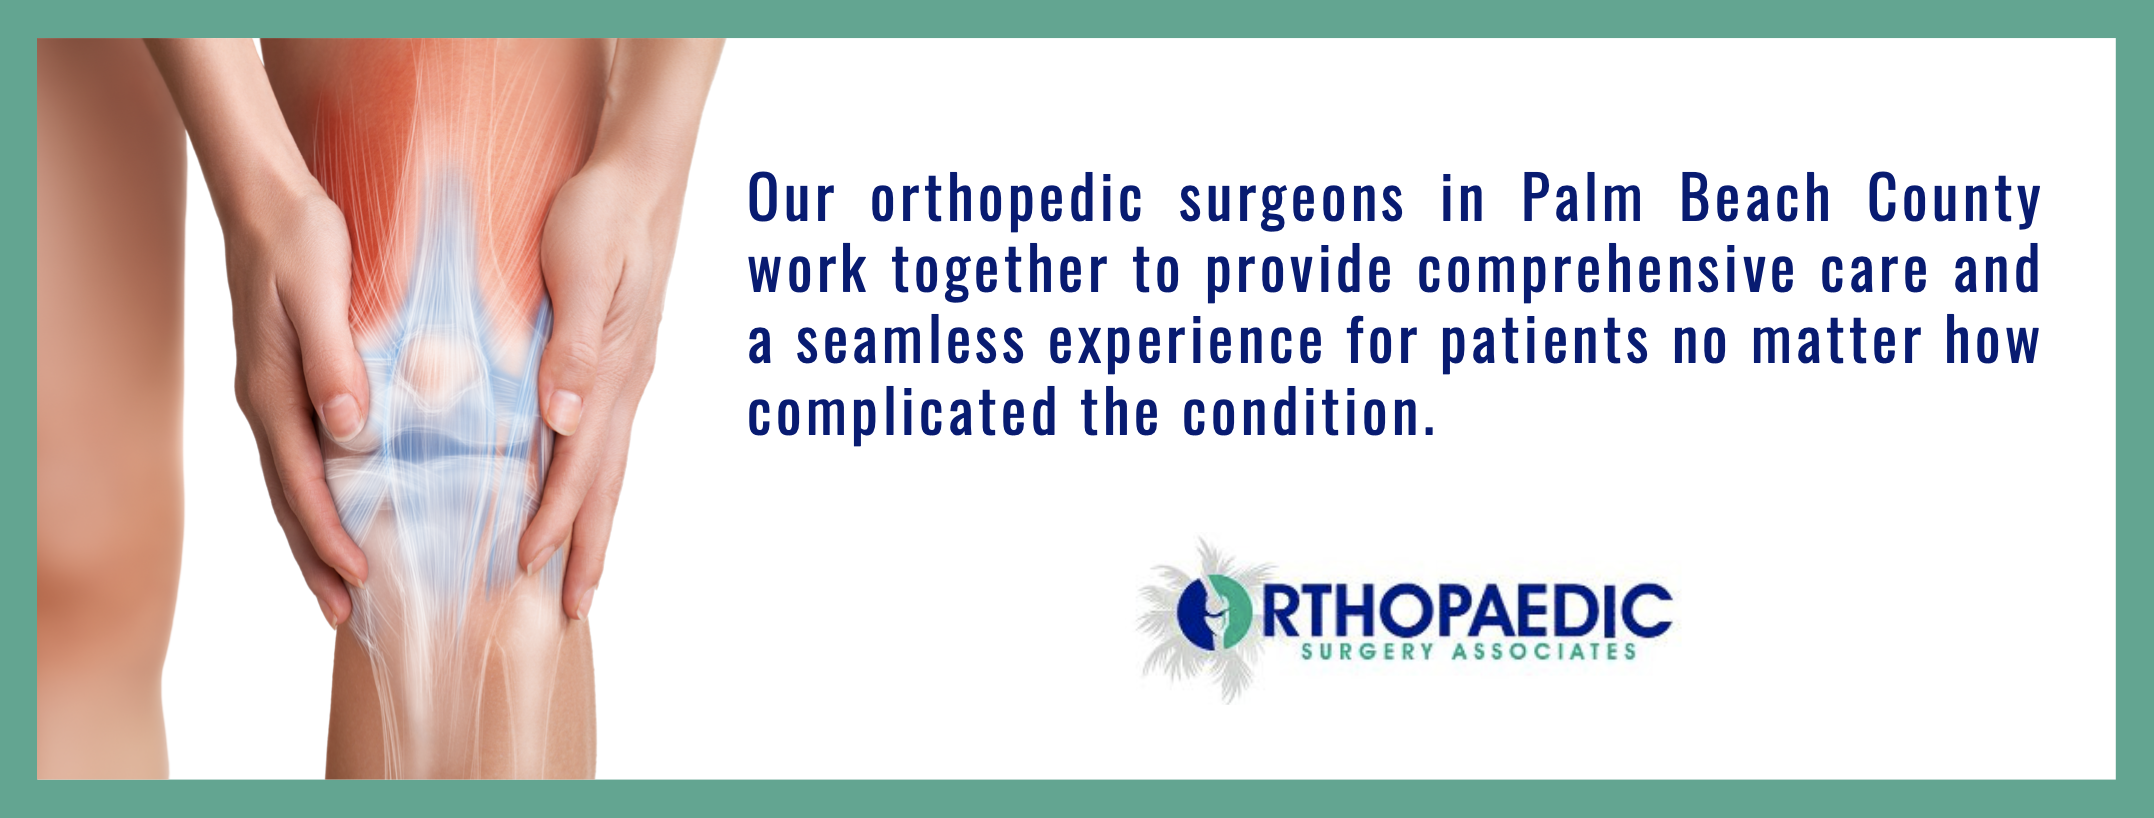 orthopedics palm beach county fl